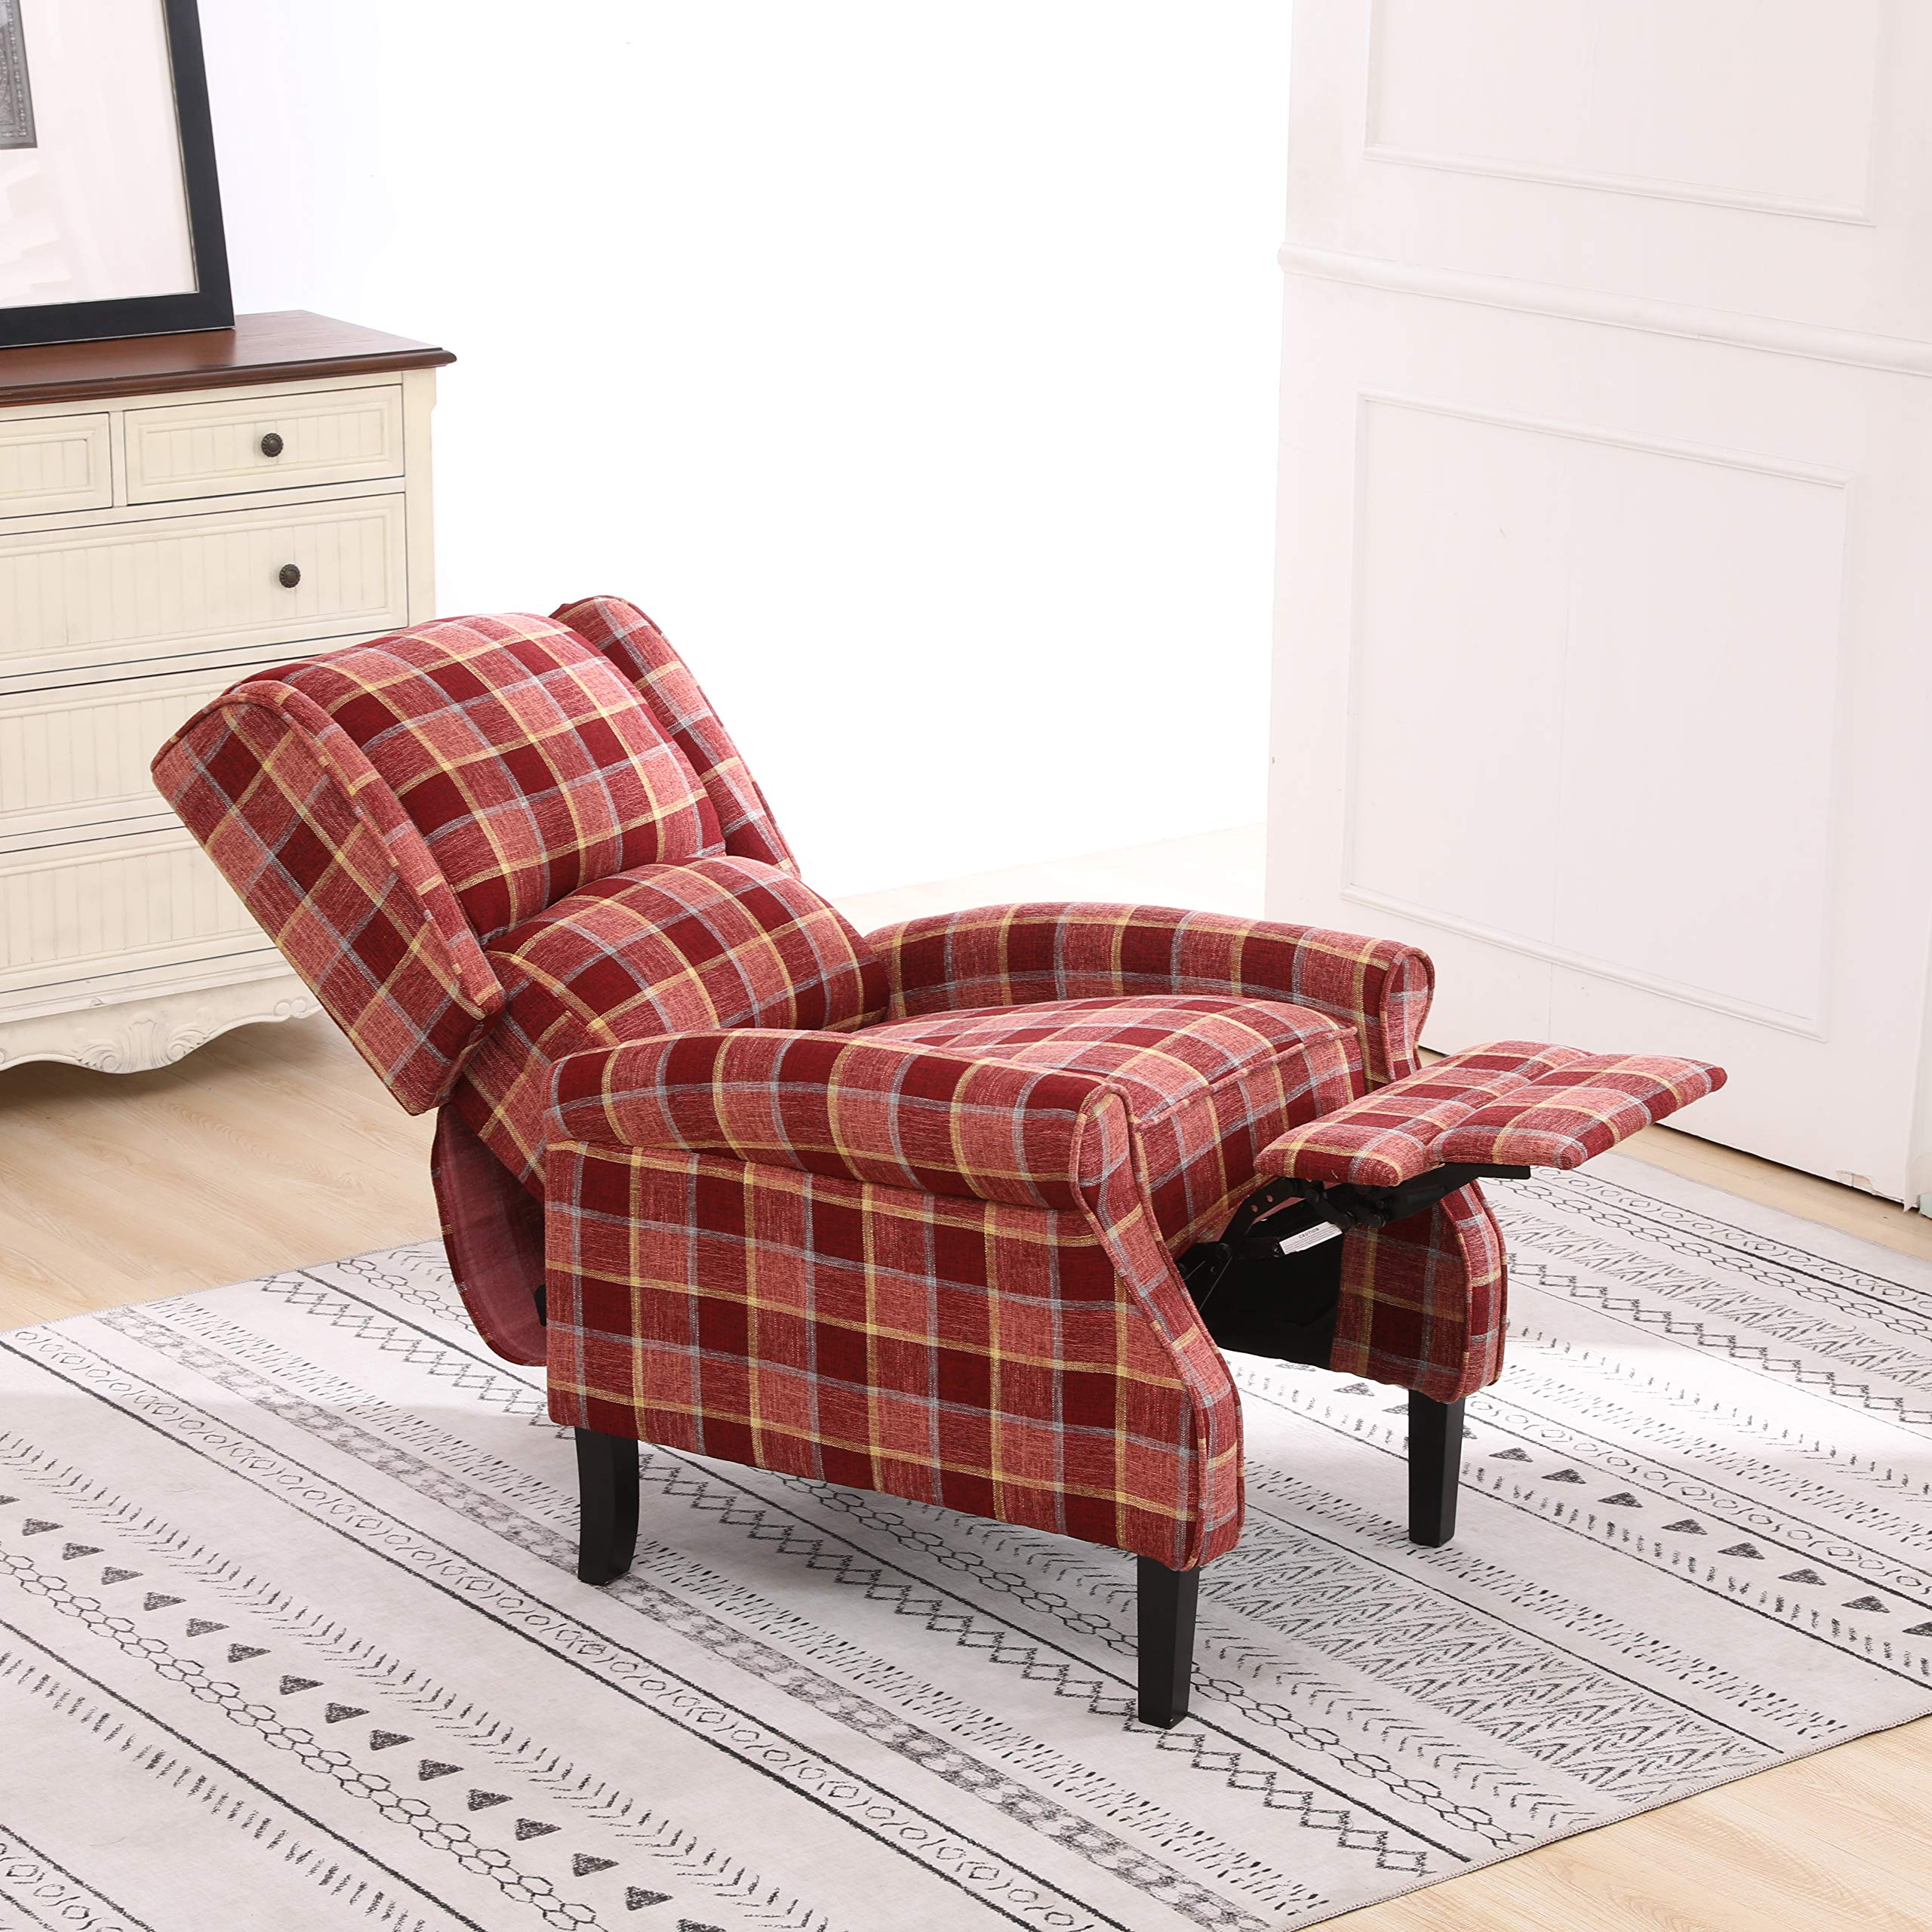 Neo® Fabric Tartan Check Wing Back Recliner Upholstered Armchair Accent Sofa Chair (Red)